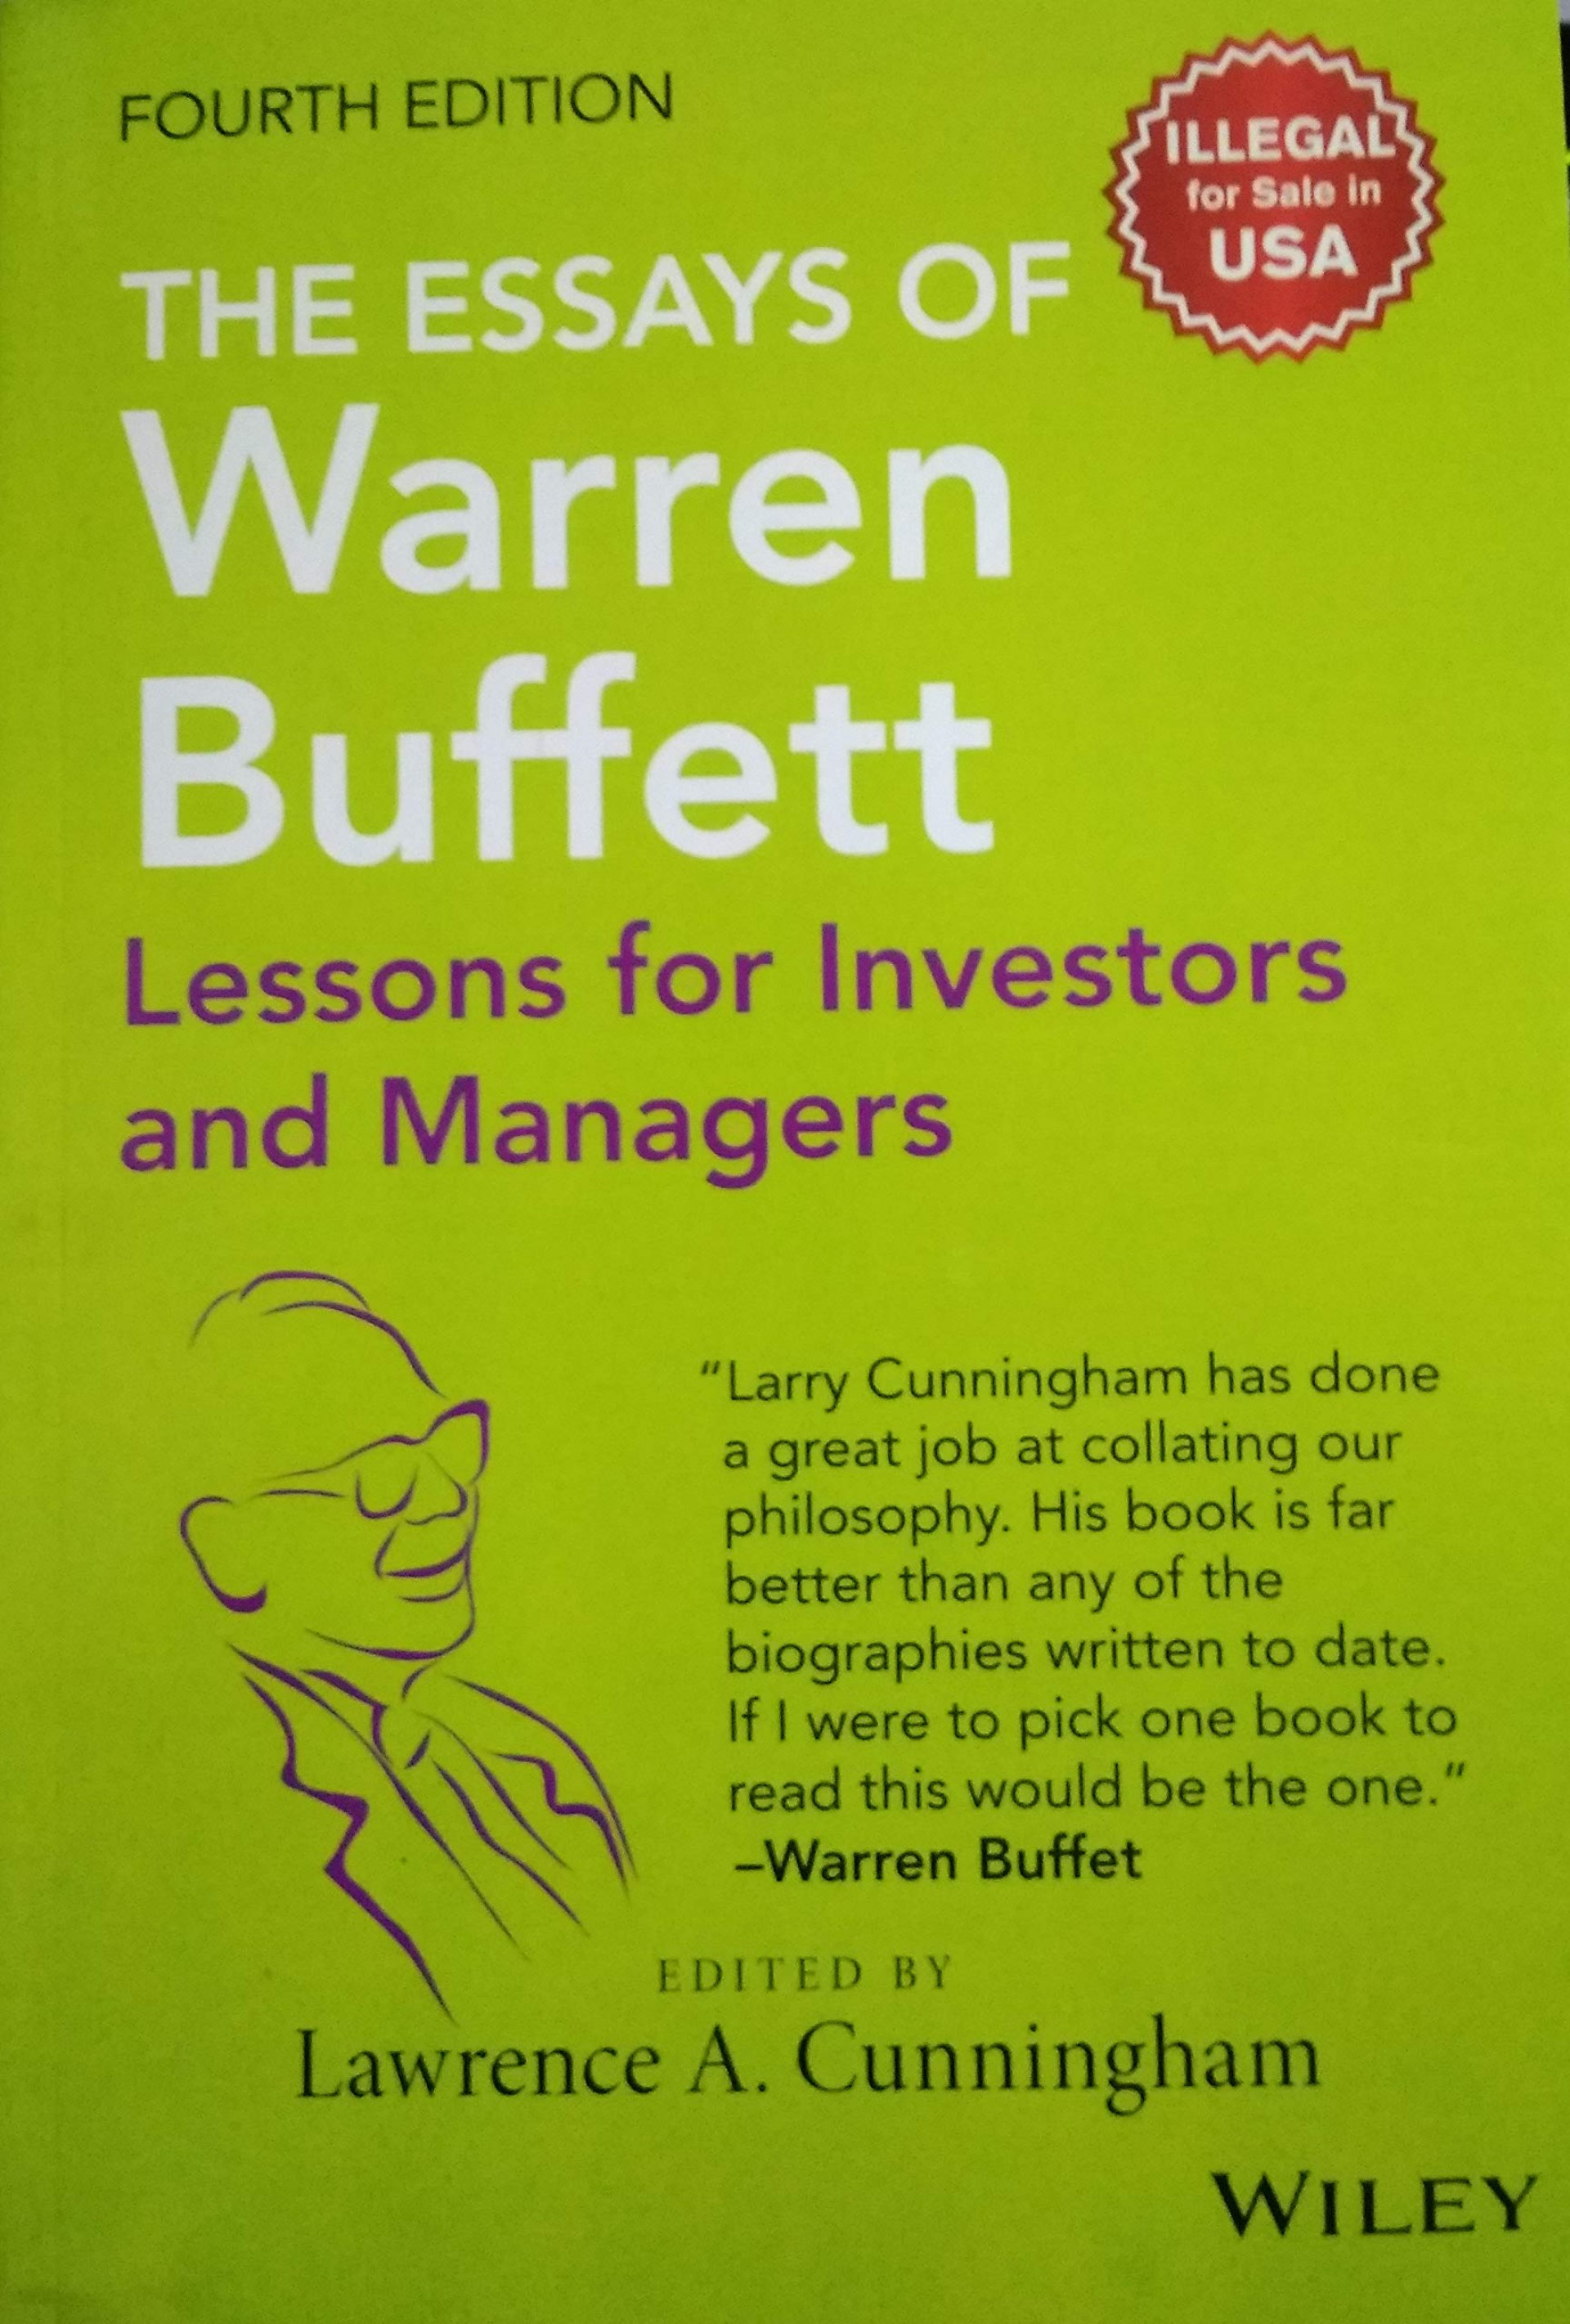 004 Essay Example 81k2r32ddul The Essays Of Warren Buffett Lessons For Investors And Striking Managers 4th Edition Free Pdf 1920